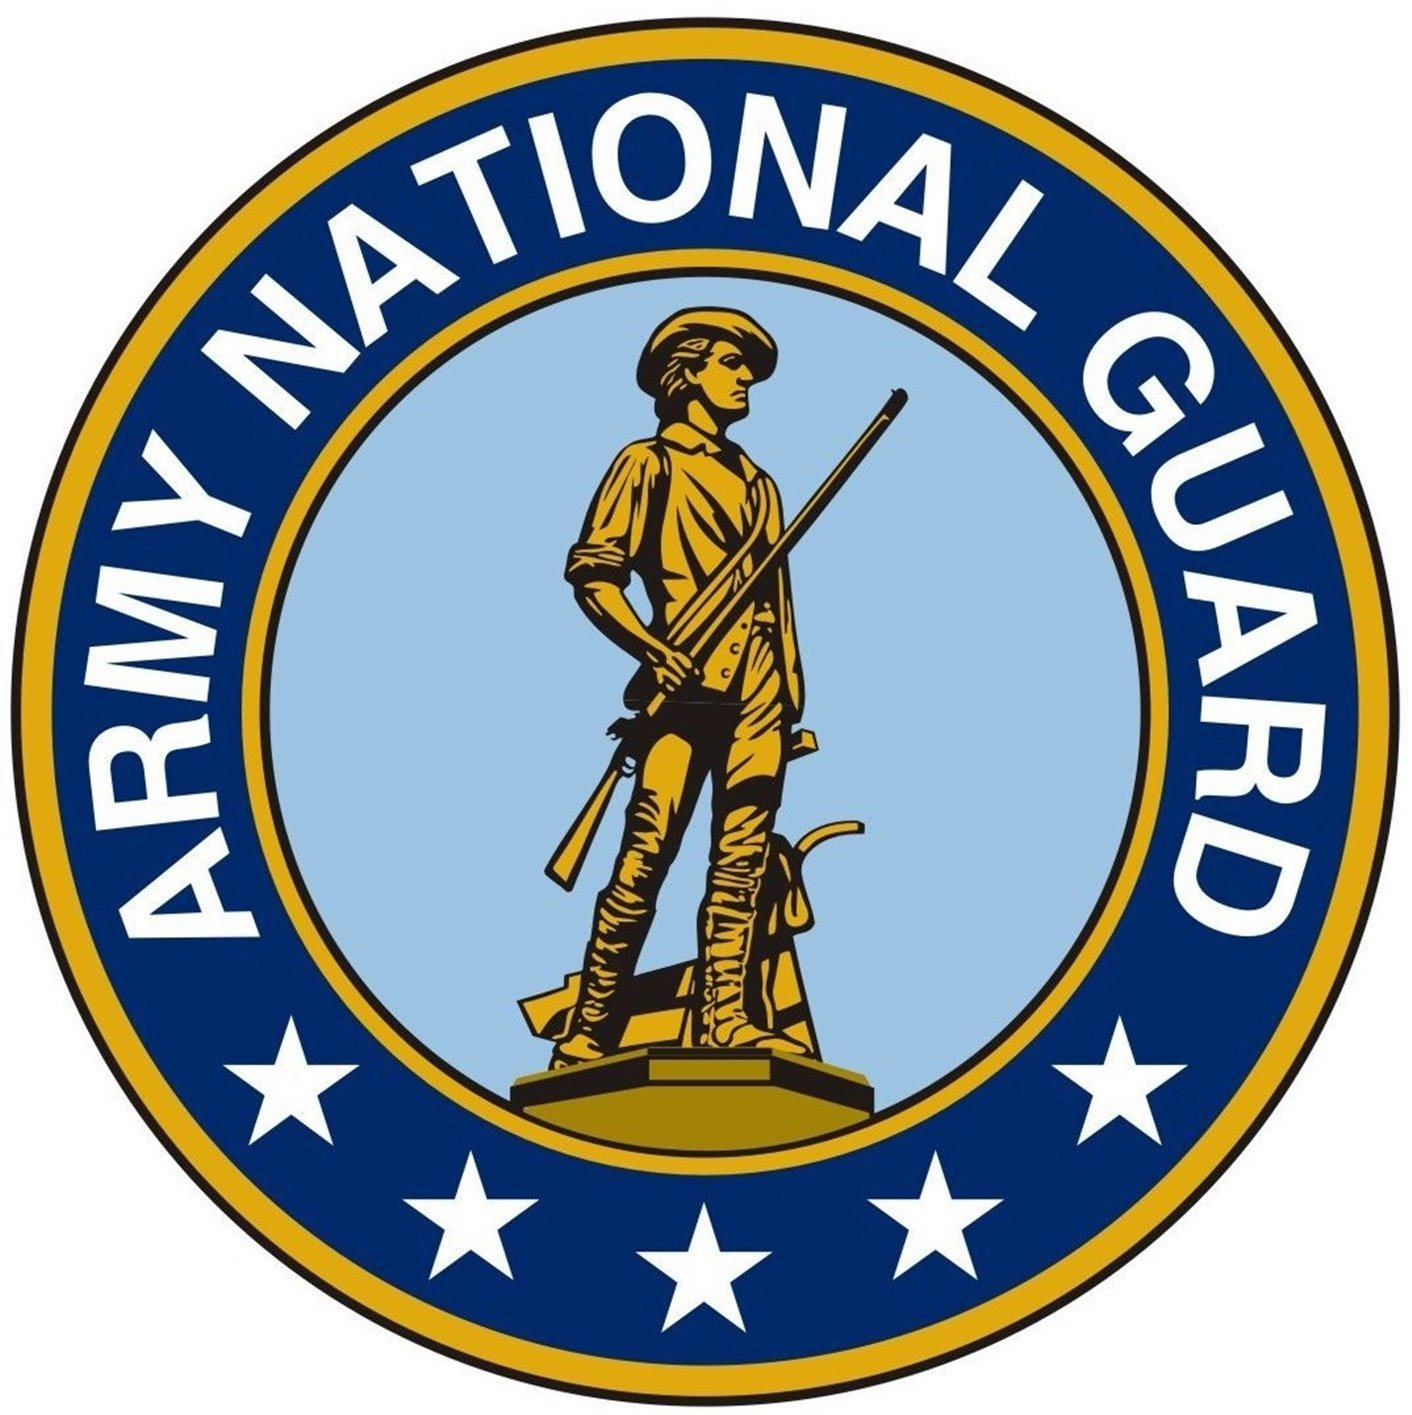 1 Pc Overwhelming Unique Army National Guard Sticker Signs Outdoor Window Indoor Graphics Truck Bumper Decals Cars Vinyl Decor Bike Patches Wall Hoverboard Trucks Decal Car Stickers Size 12''x12'' by Chiam-Mart